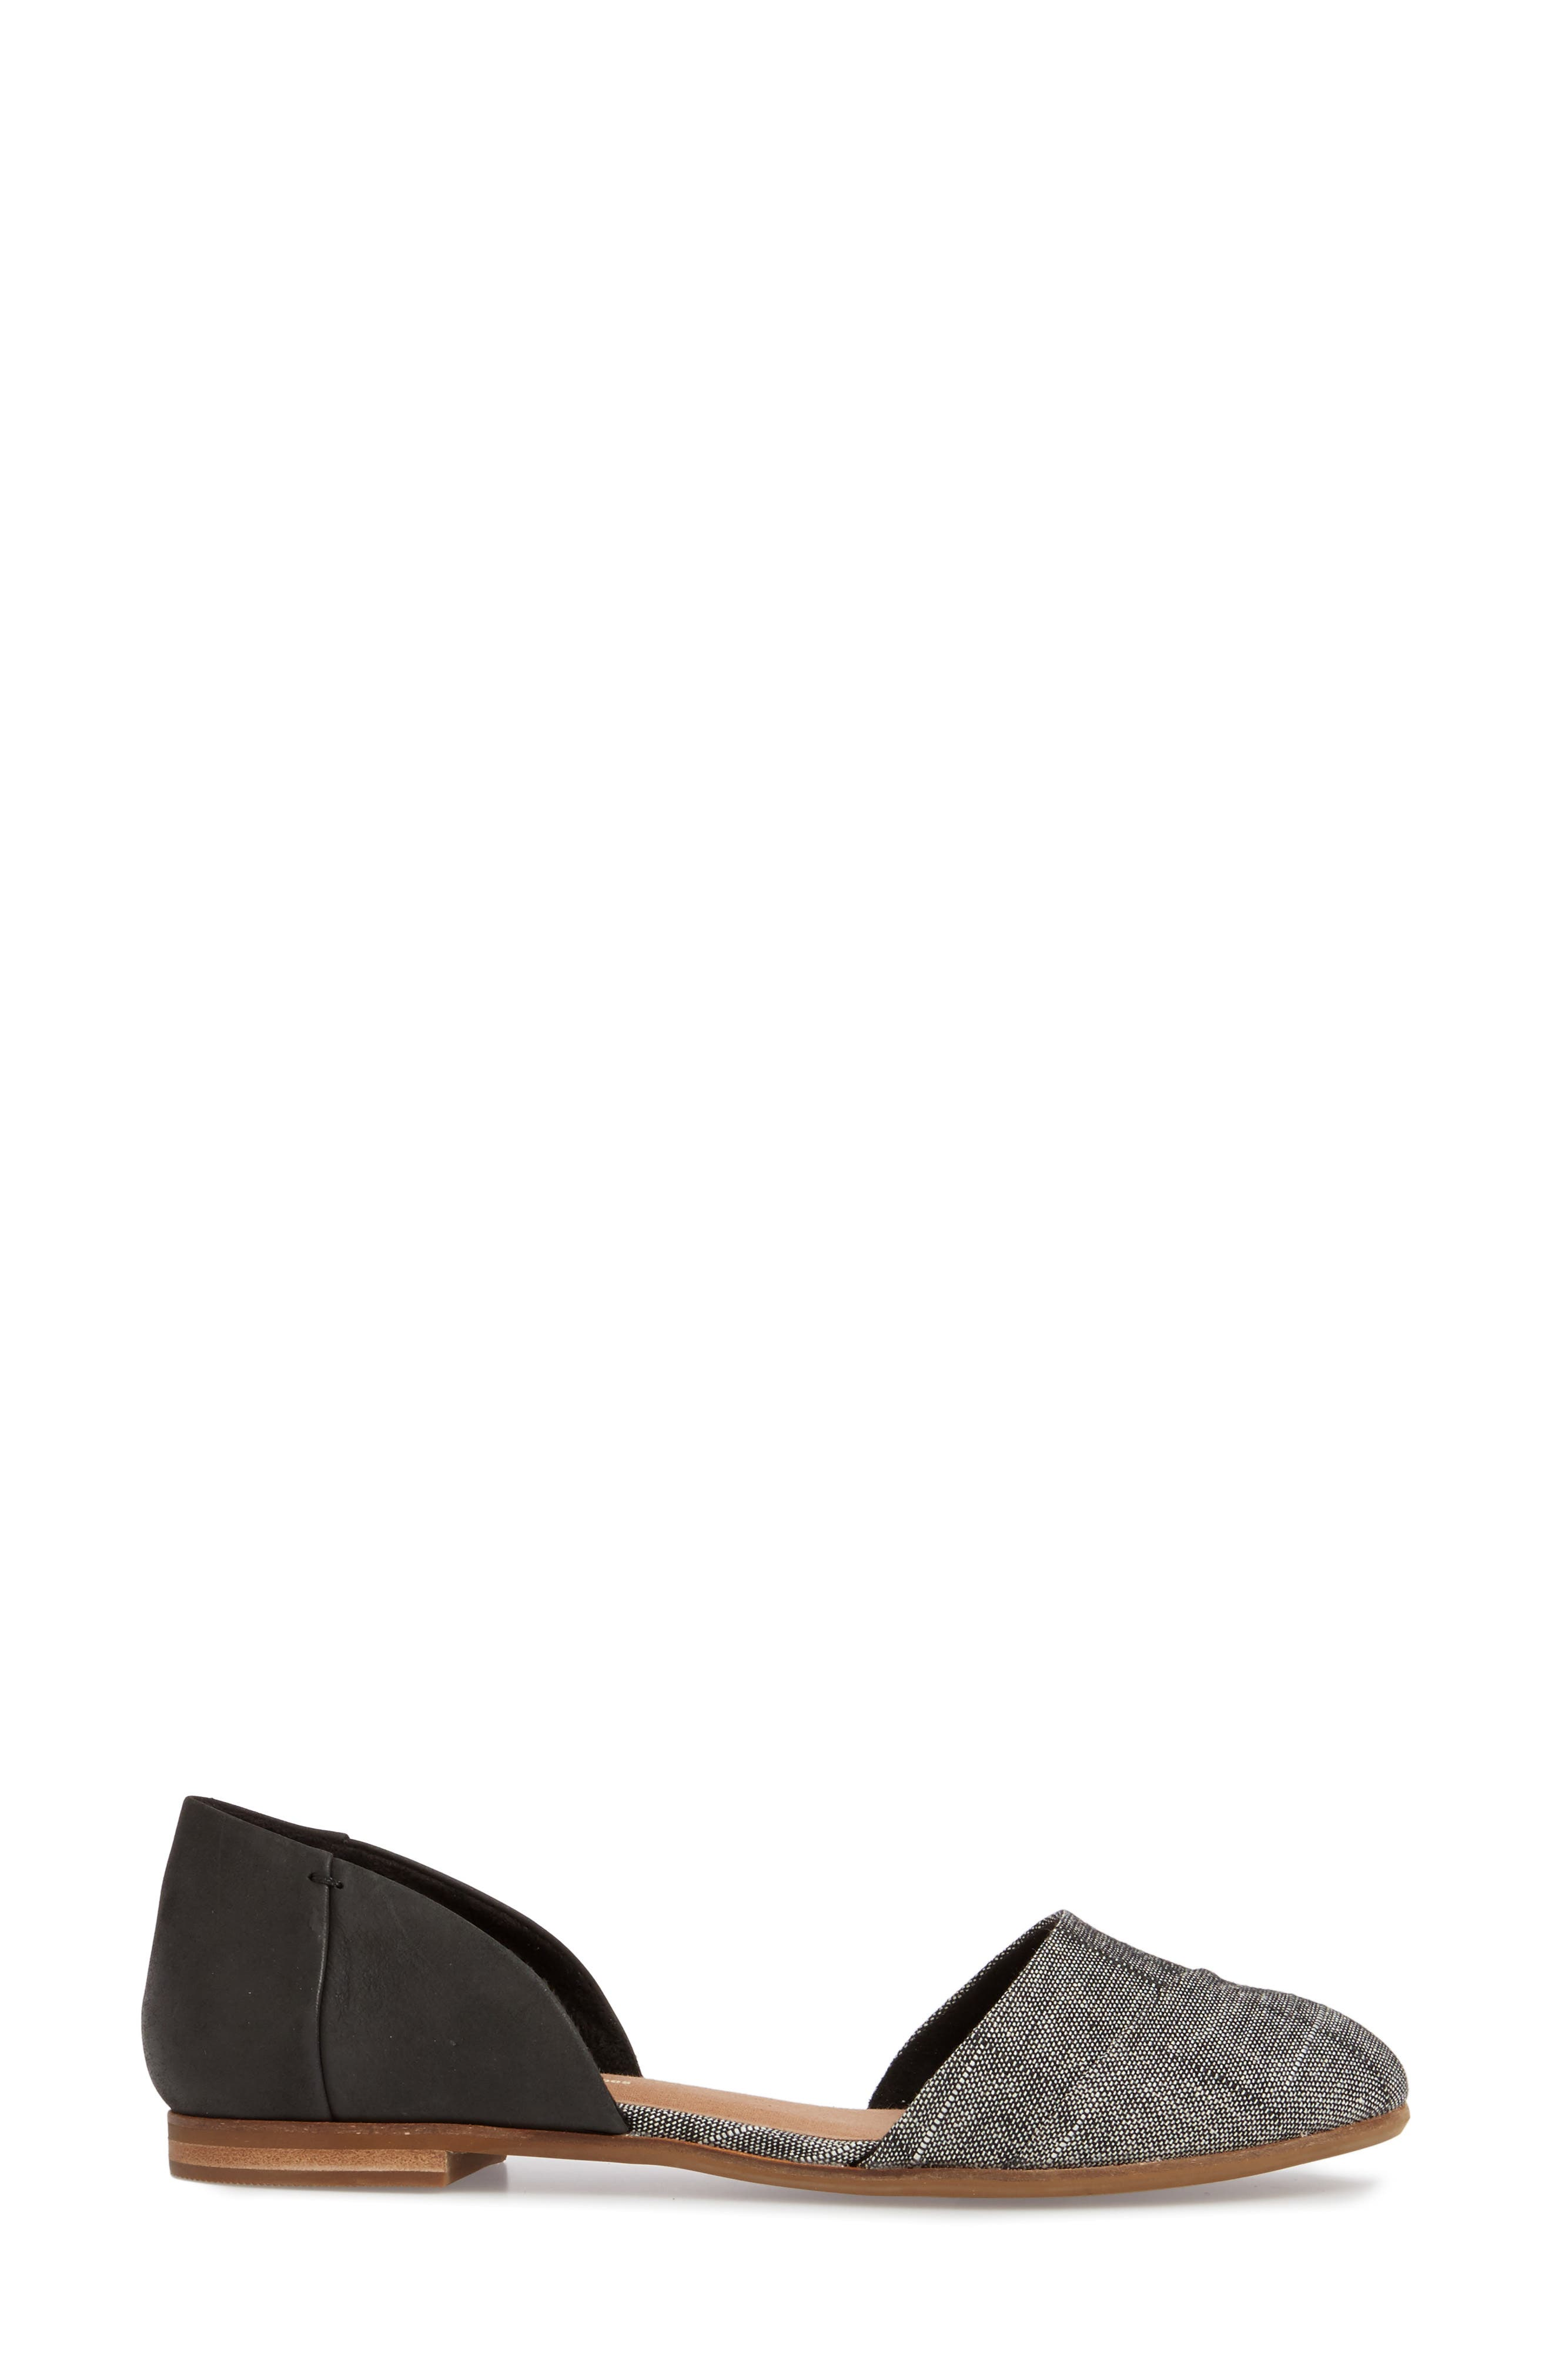 Jutti d'Orsay Flat,                             Alternate thumbnail 3, color,                             BLACK LEATHER/ CHAMBRAY